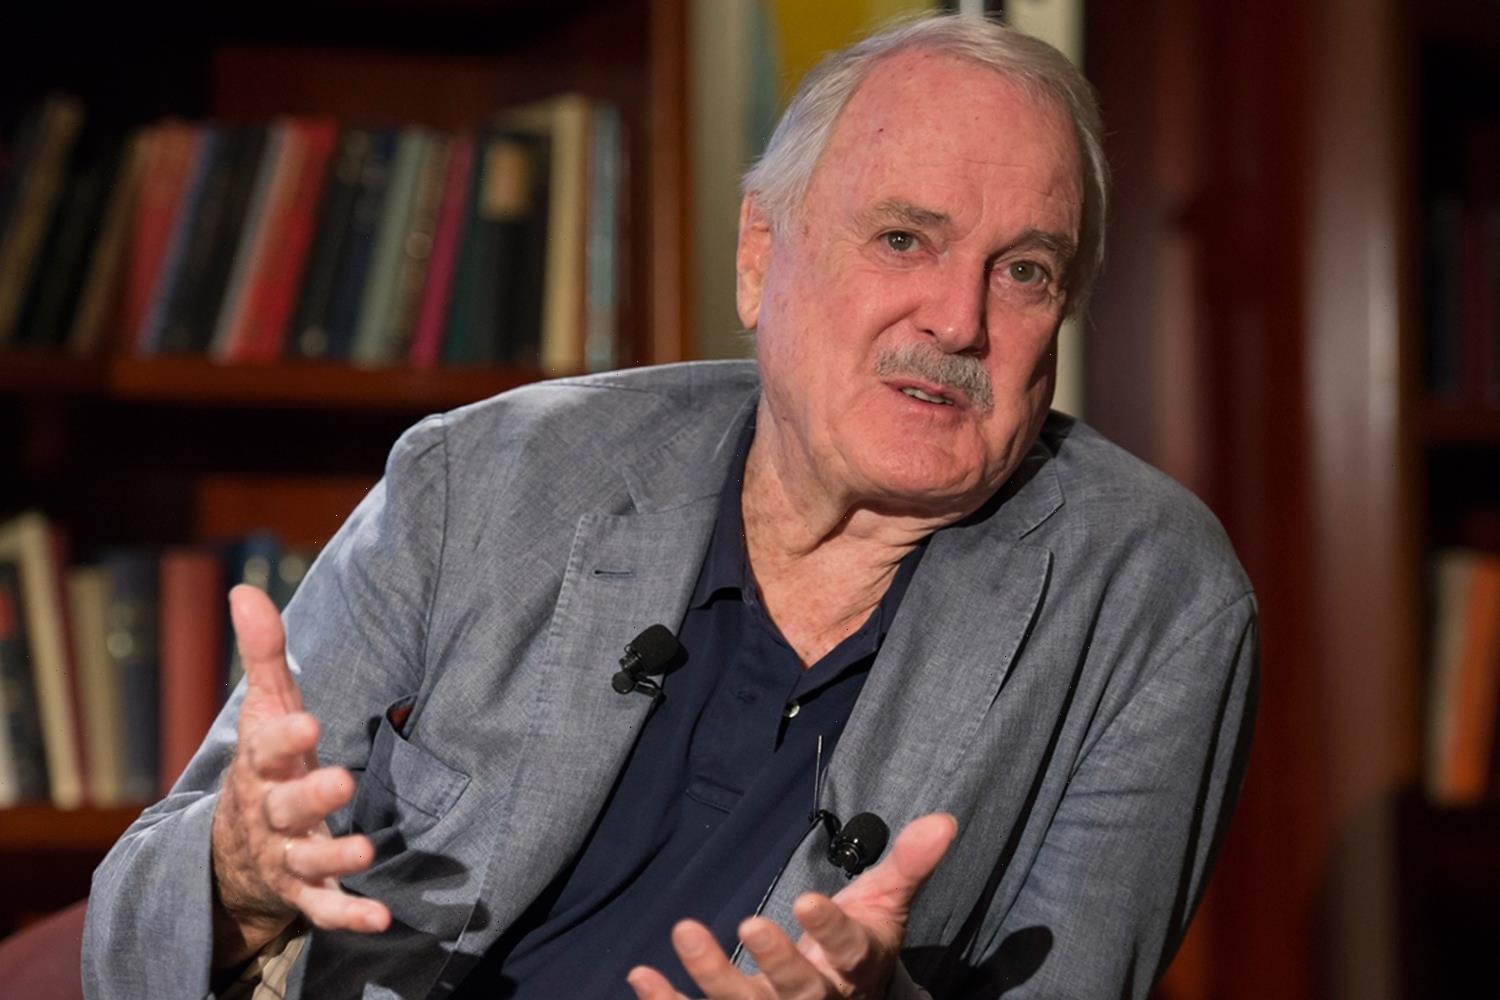 John Cleese to tackle 'minefield of cancel culture and wokeness' in new Channel 4 series